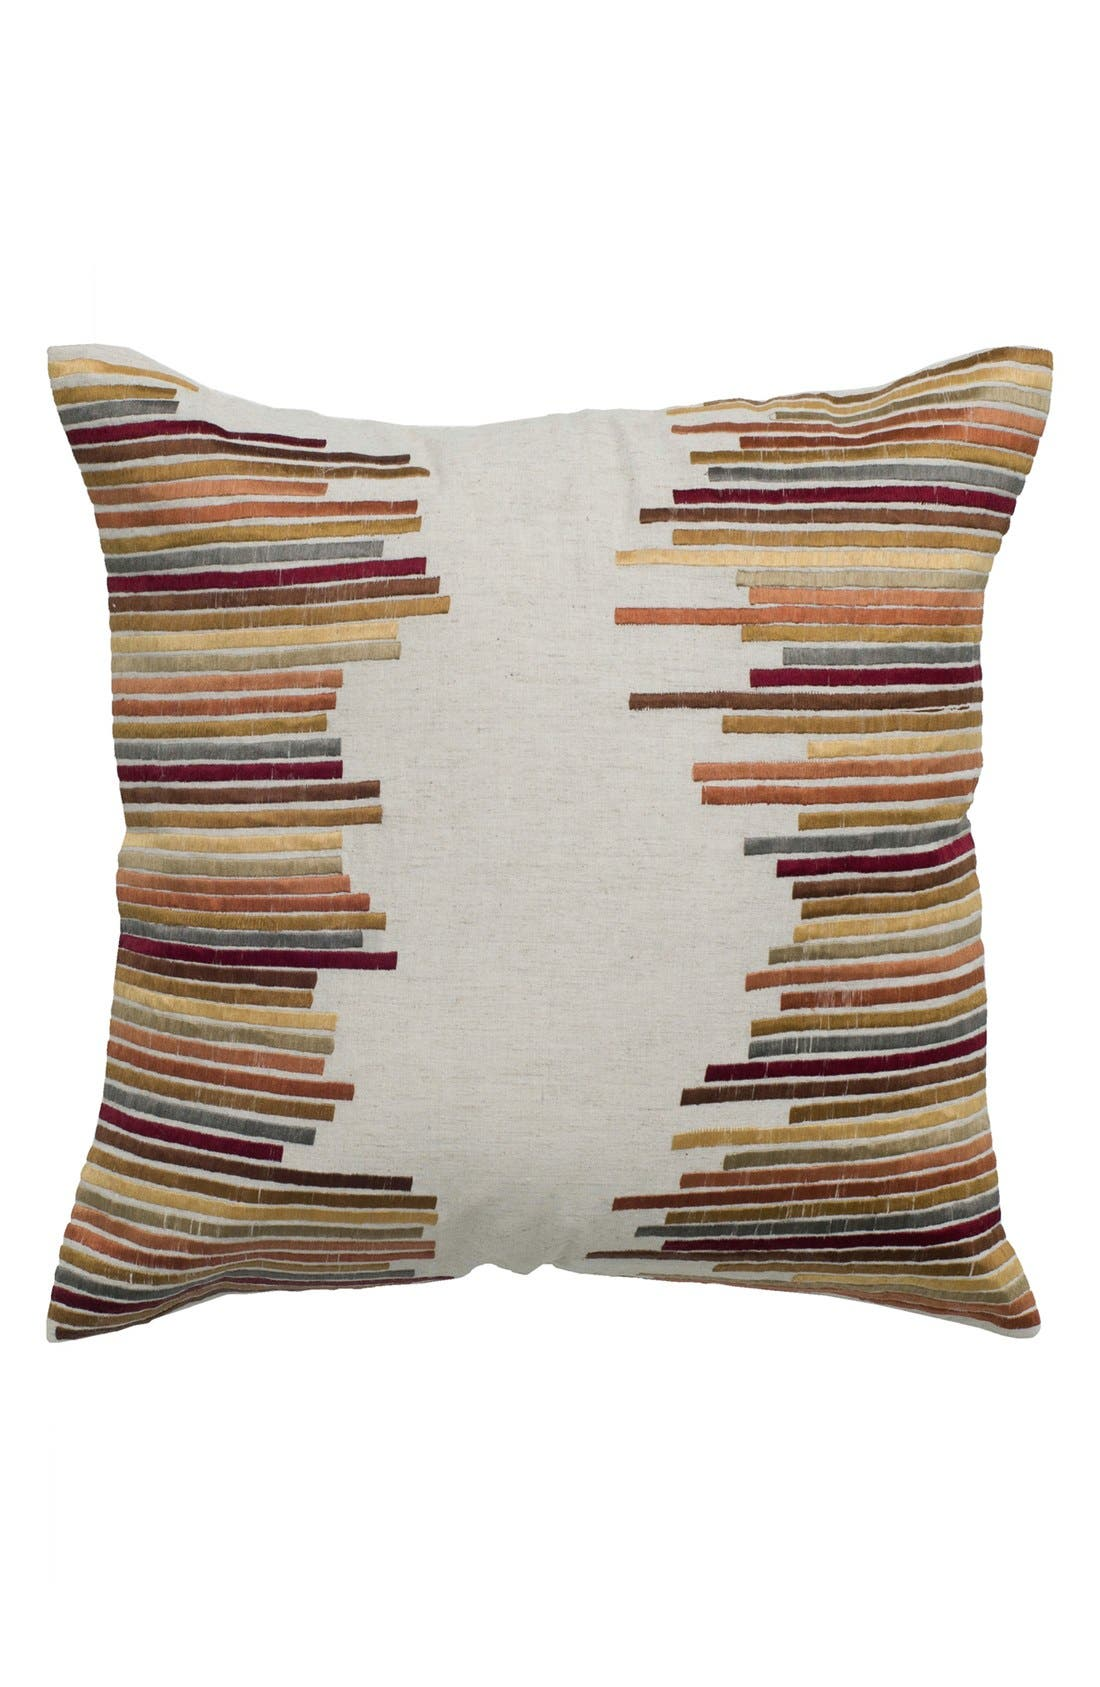 Main Image - Rizzy Home 'Jagged Stripe' Pillow